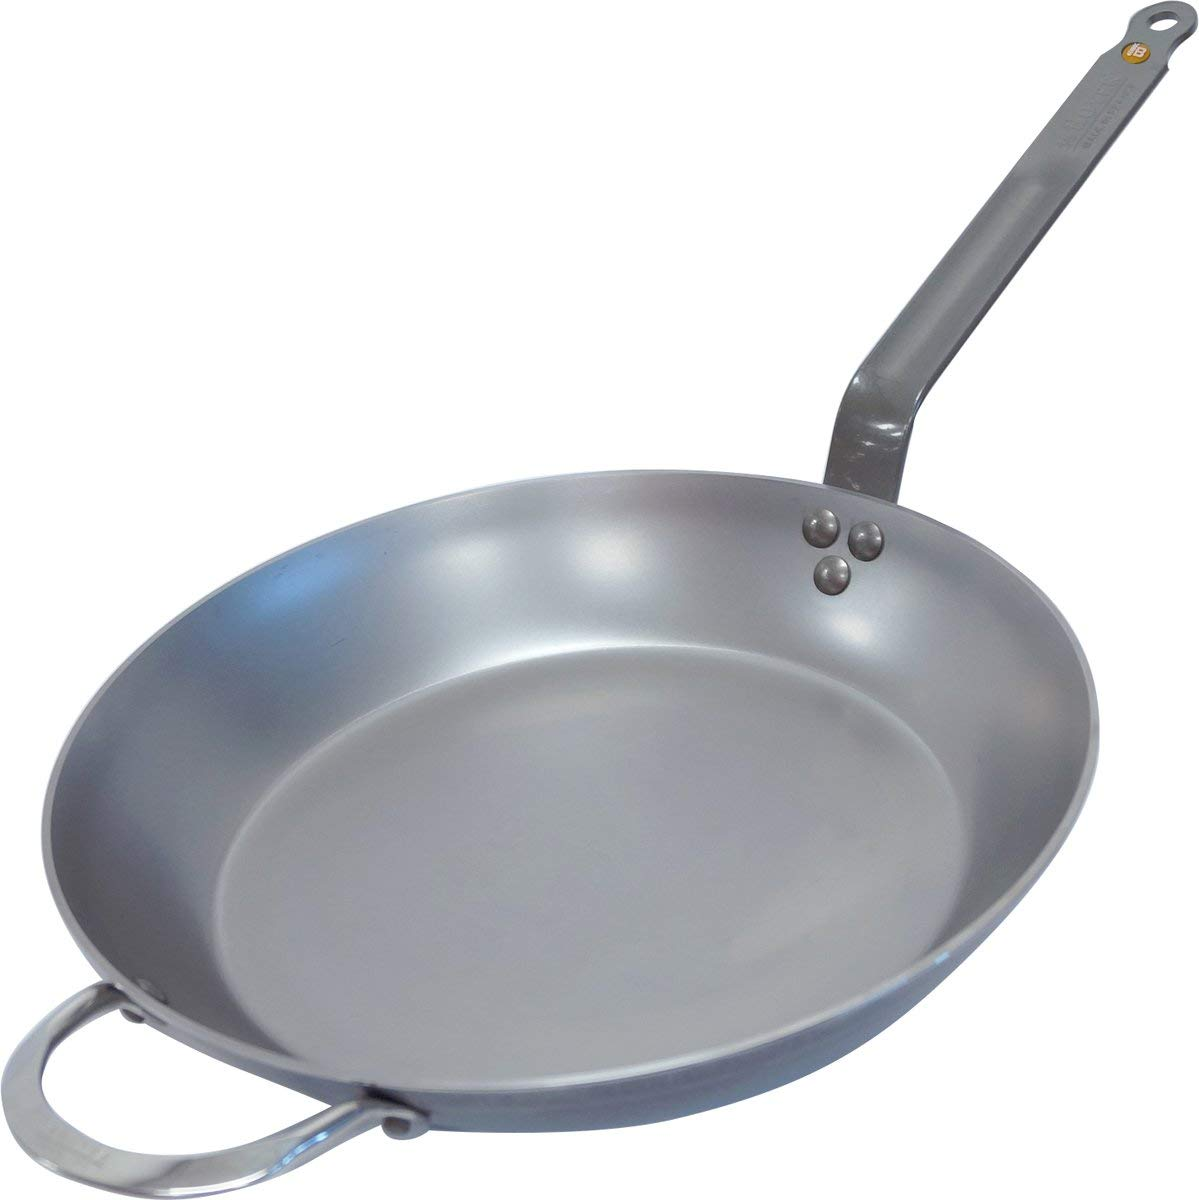 Top 5 Best Frying Pans (2020 Reviews & Buying Guide) 2